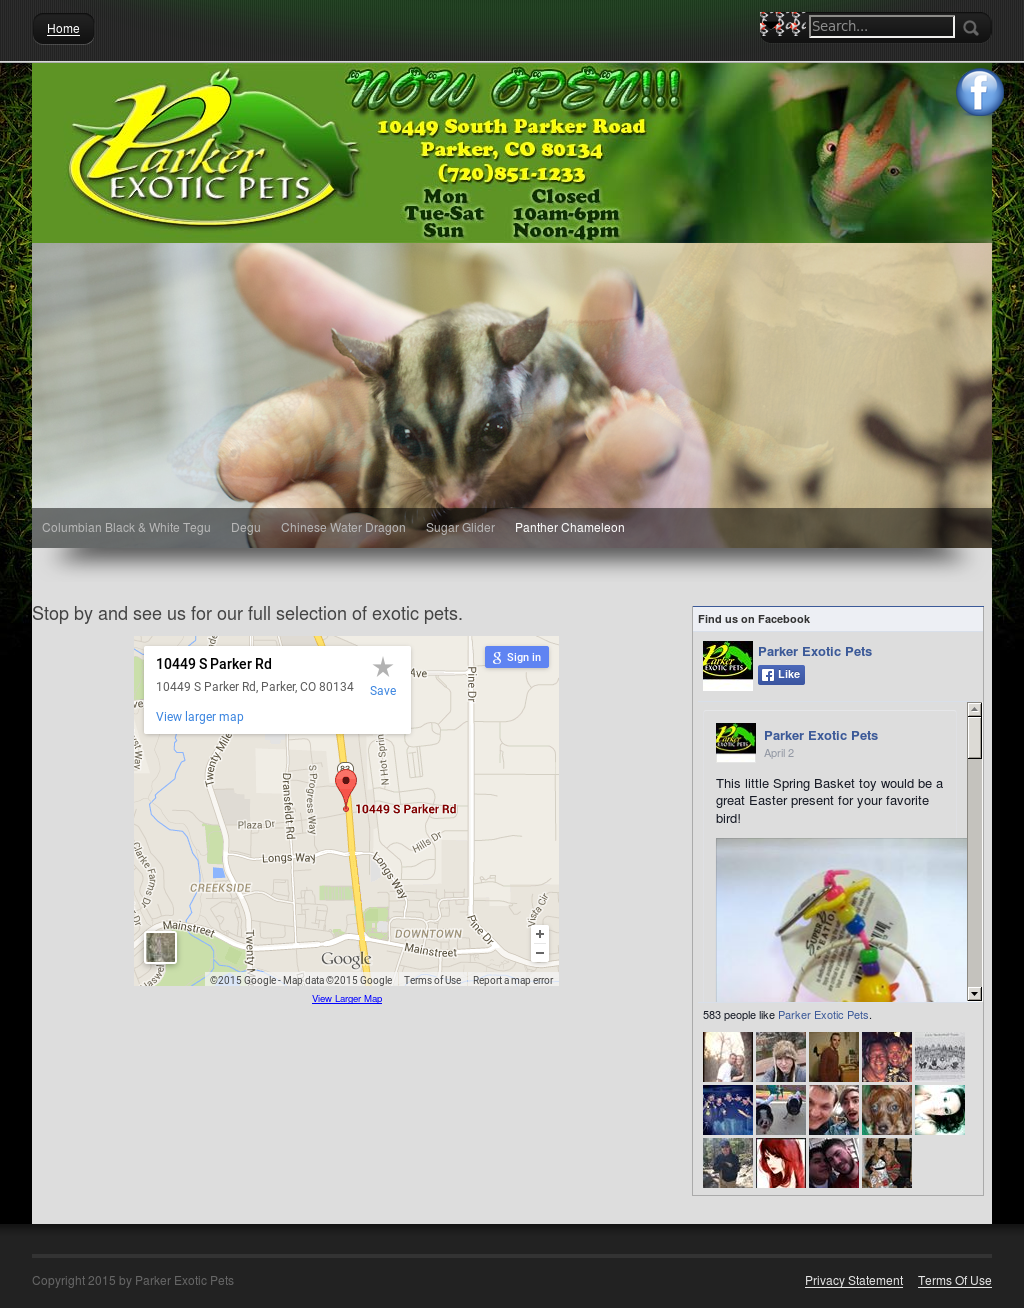 Parker Exotic Pets Competitors, Revenue and Employees